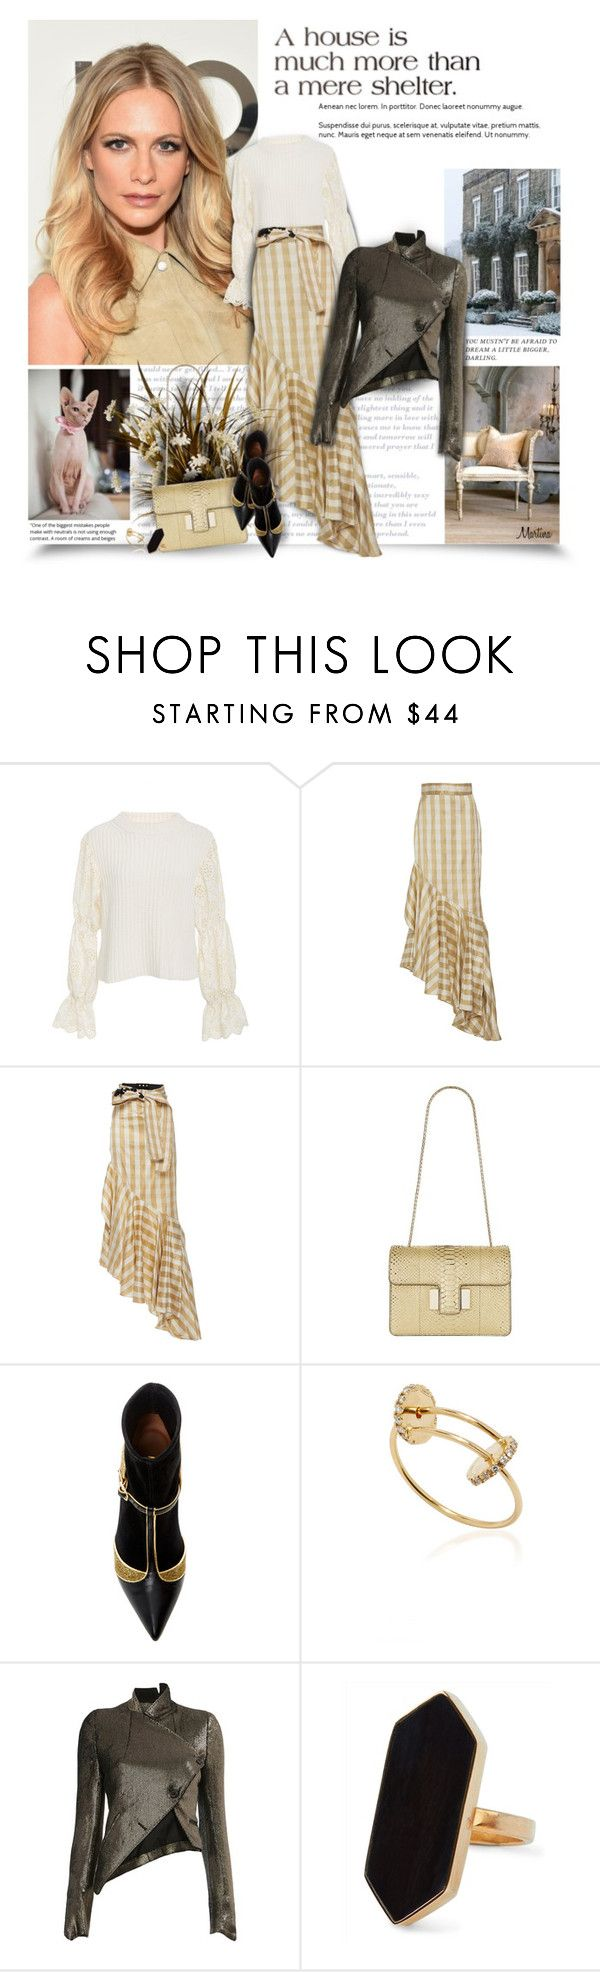 """Dressing Is A Way Of Life"" by thewondersoffashion ❤ liked on Polyvore featuring Michael Kors, Sea, New York, Johanna Ortiz, Tom Ford, Malone Souliers, Delfina Delettrez, Ann Demeulemeester and Jaeger"